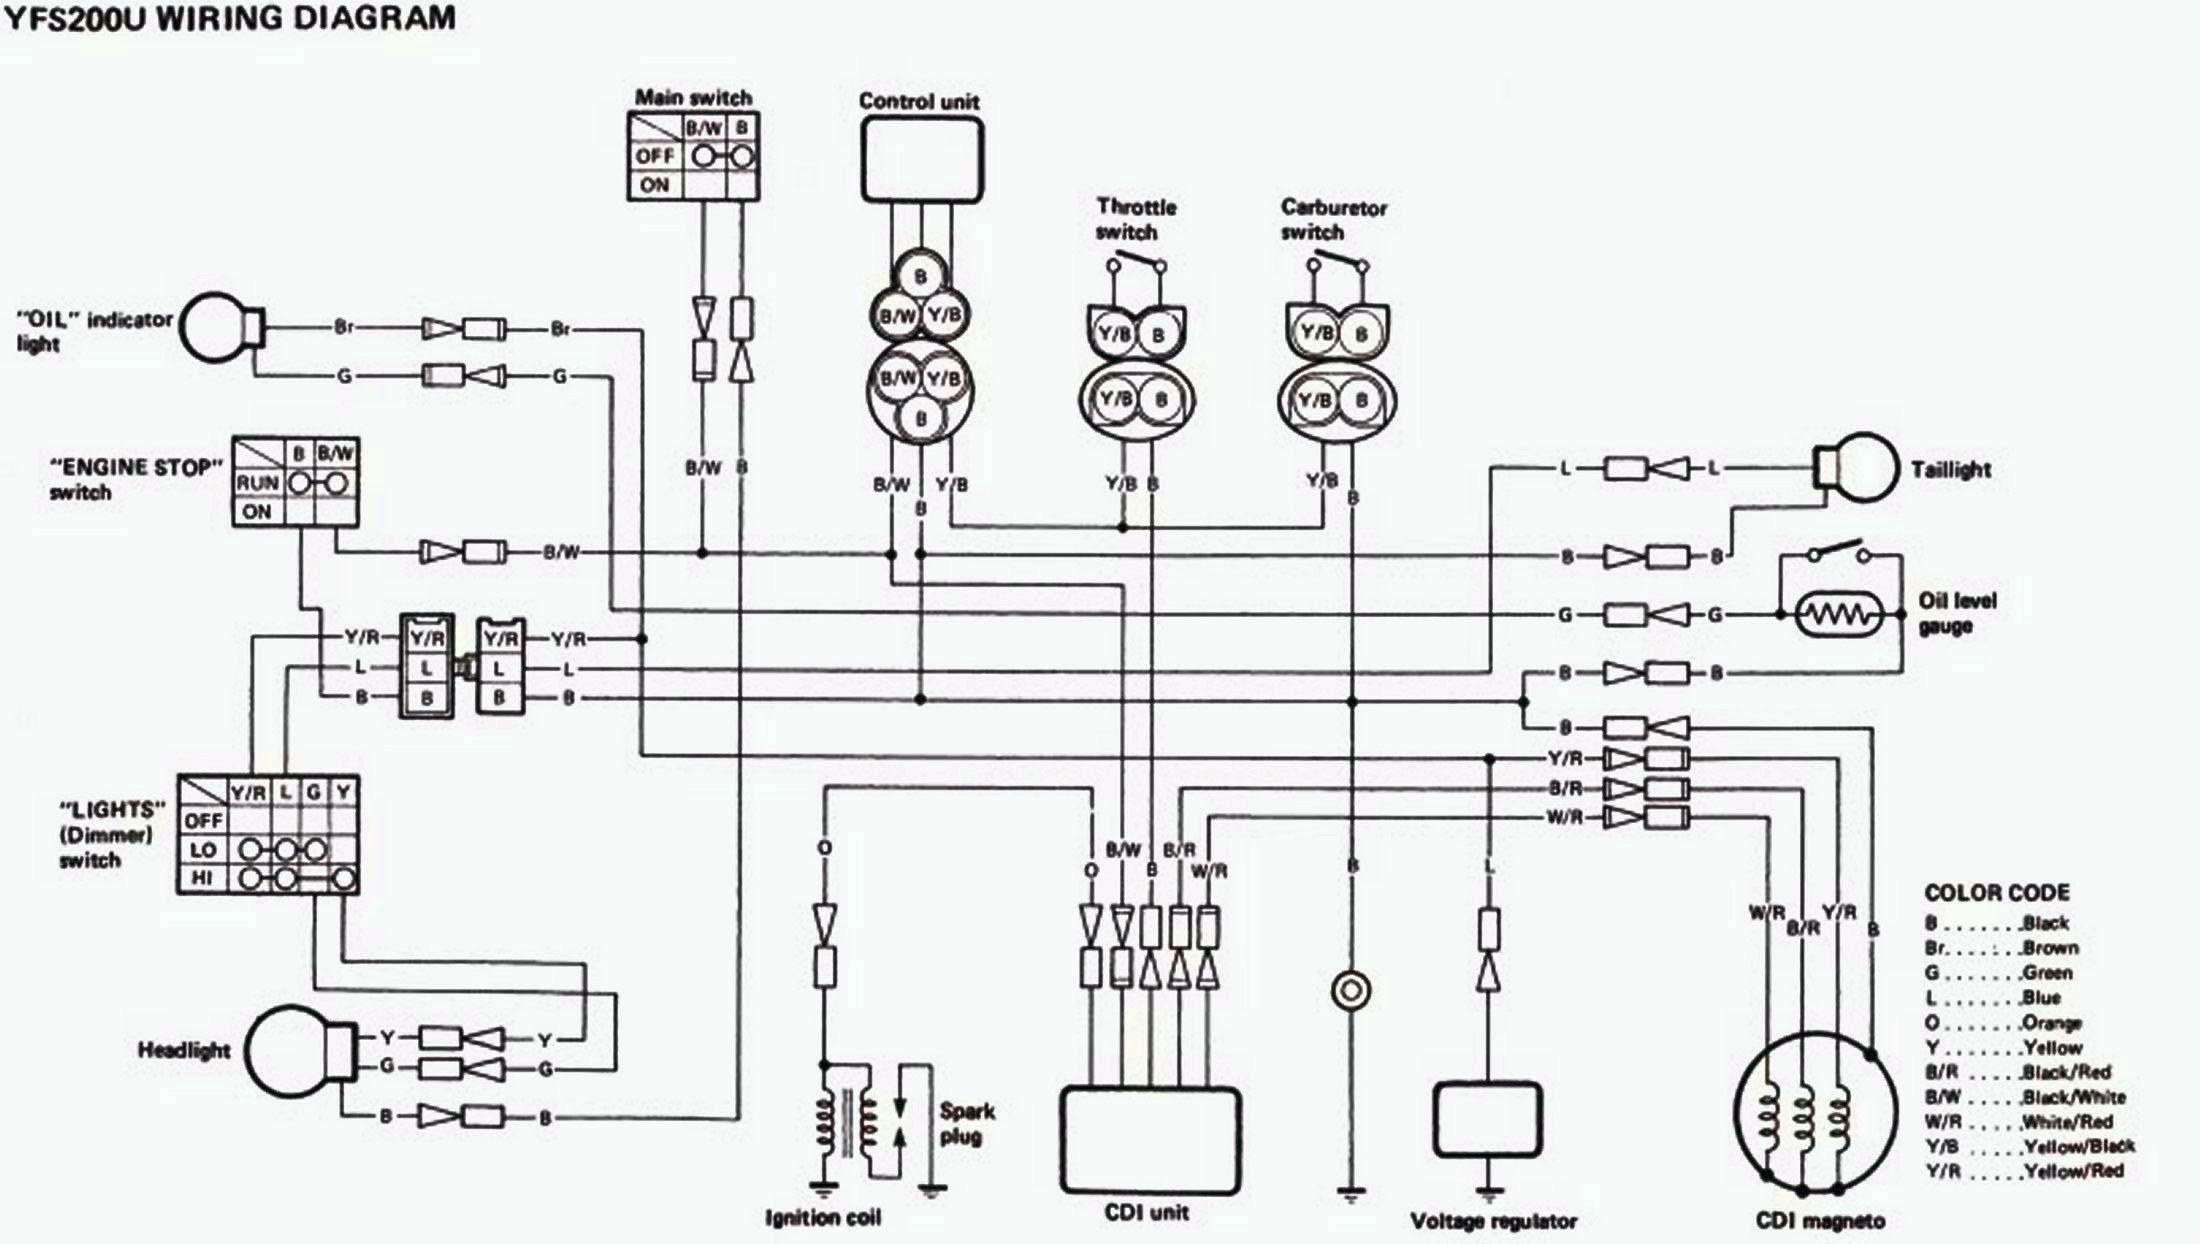 yamaha wiring diagram wiring diagram site yamaha wiring diagrams wiring diagram data yamaha command link wiring diagram yamaha wiring diagram